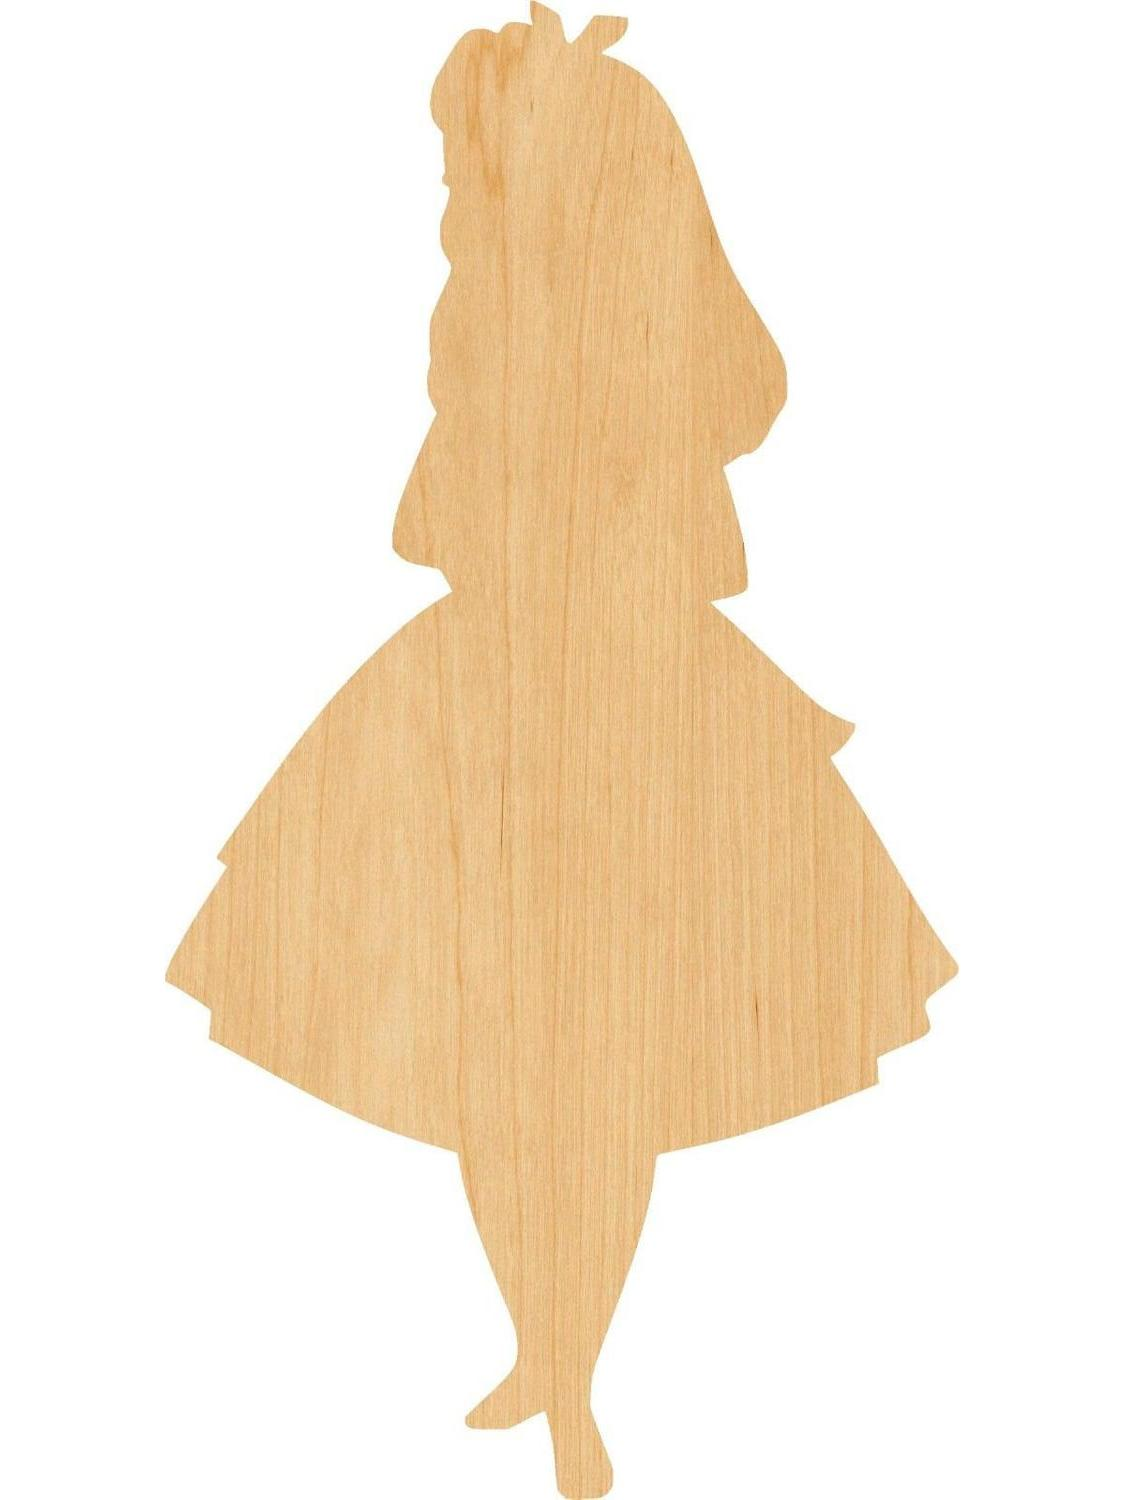 Alice In Wonderland Wooden Laser Cut Out Shape - Great For Crafting - Hobbyist - D.I.Y. Projects